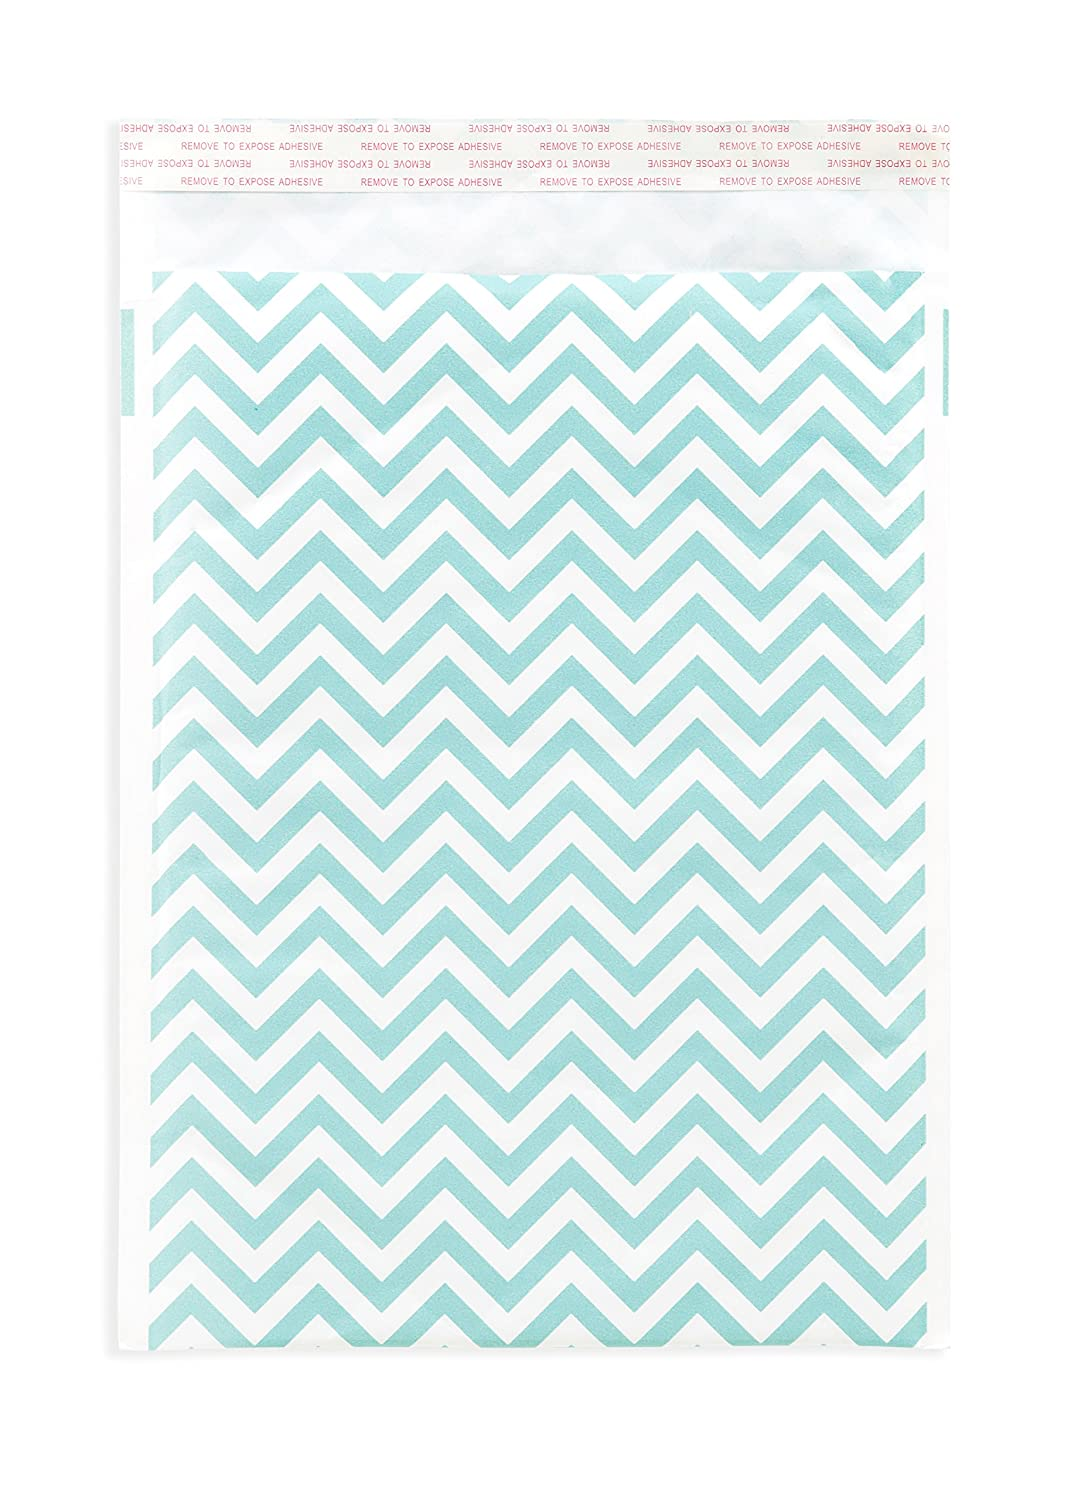 chic 25 Kraft Printed Bubble Mailers Blue Chevron 9x12 Colored Padded Shipping Envelopes Poly by Inspired Mailers